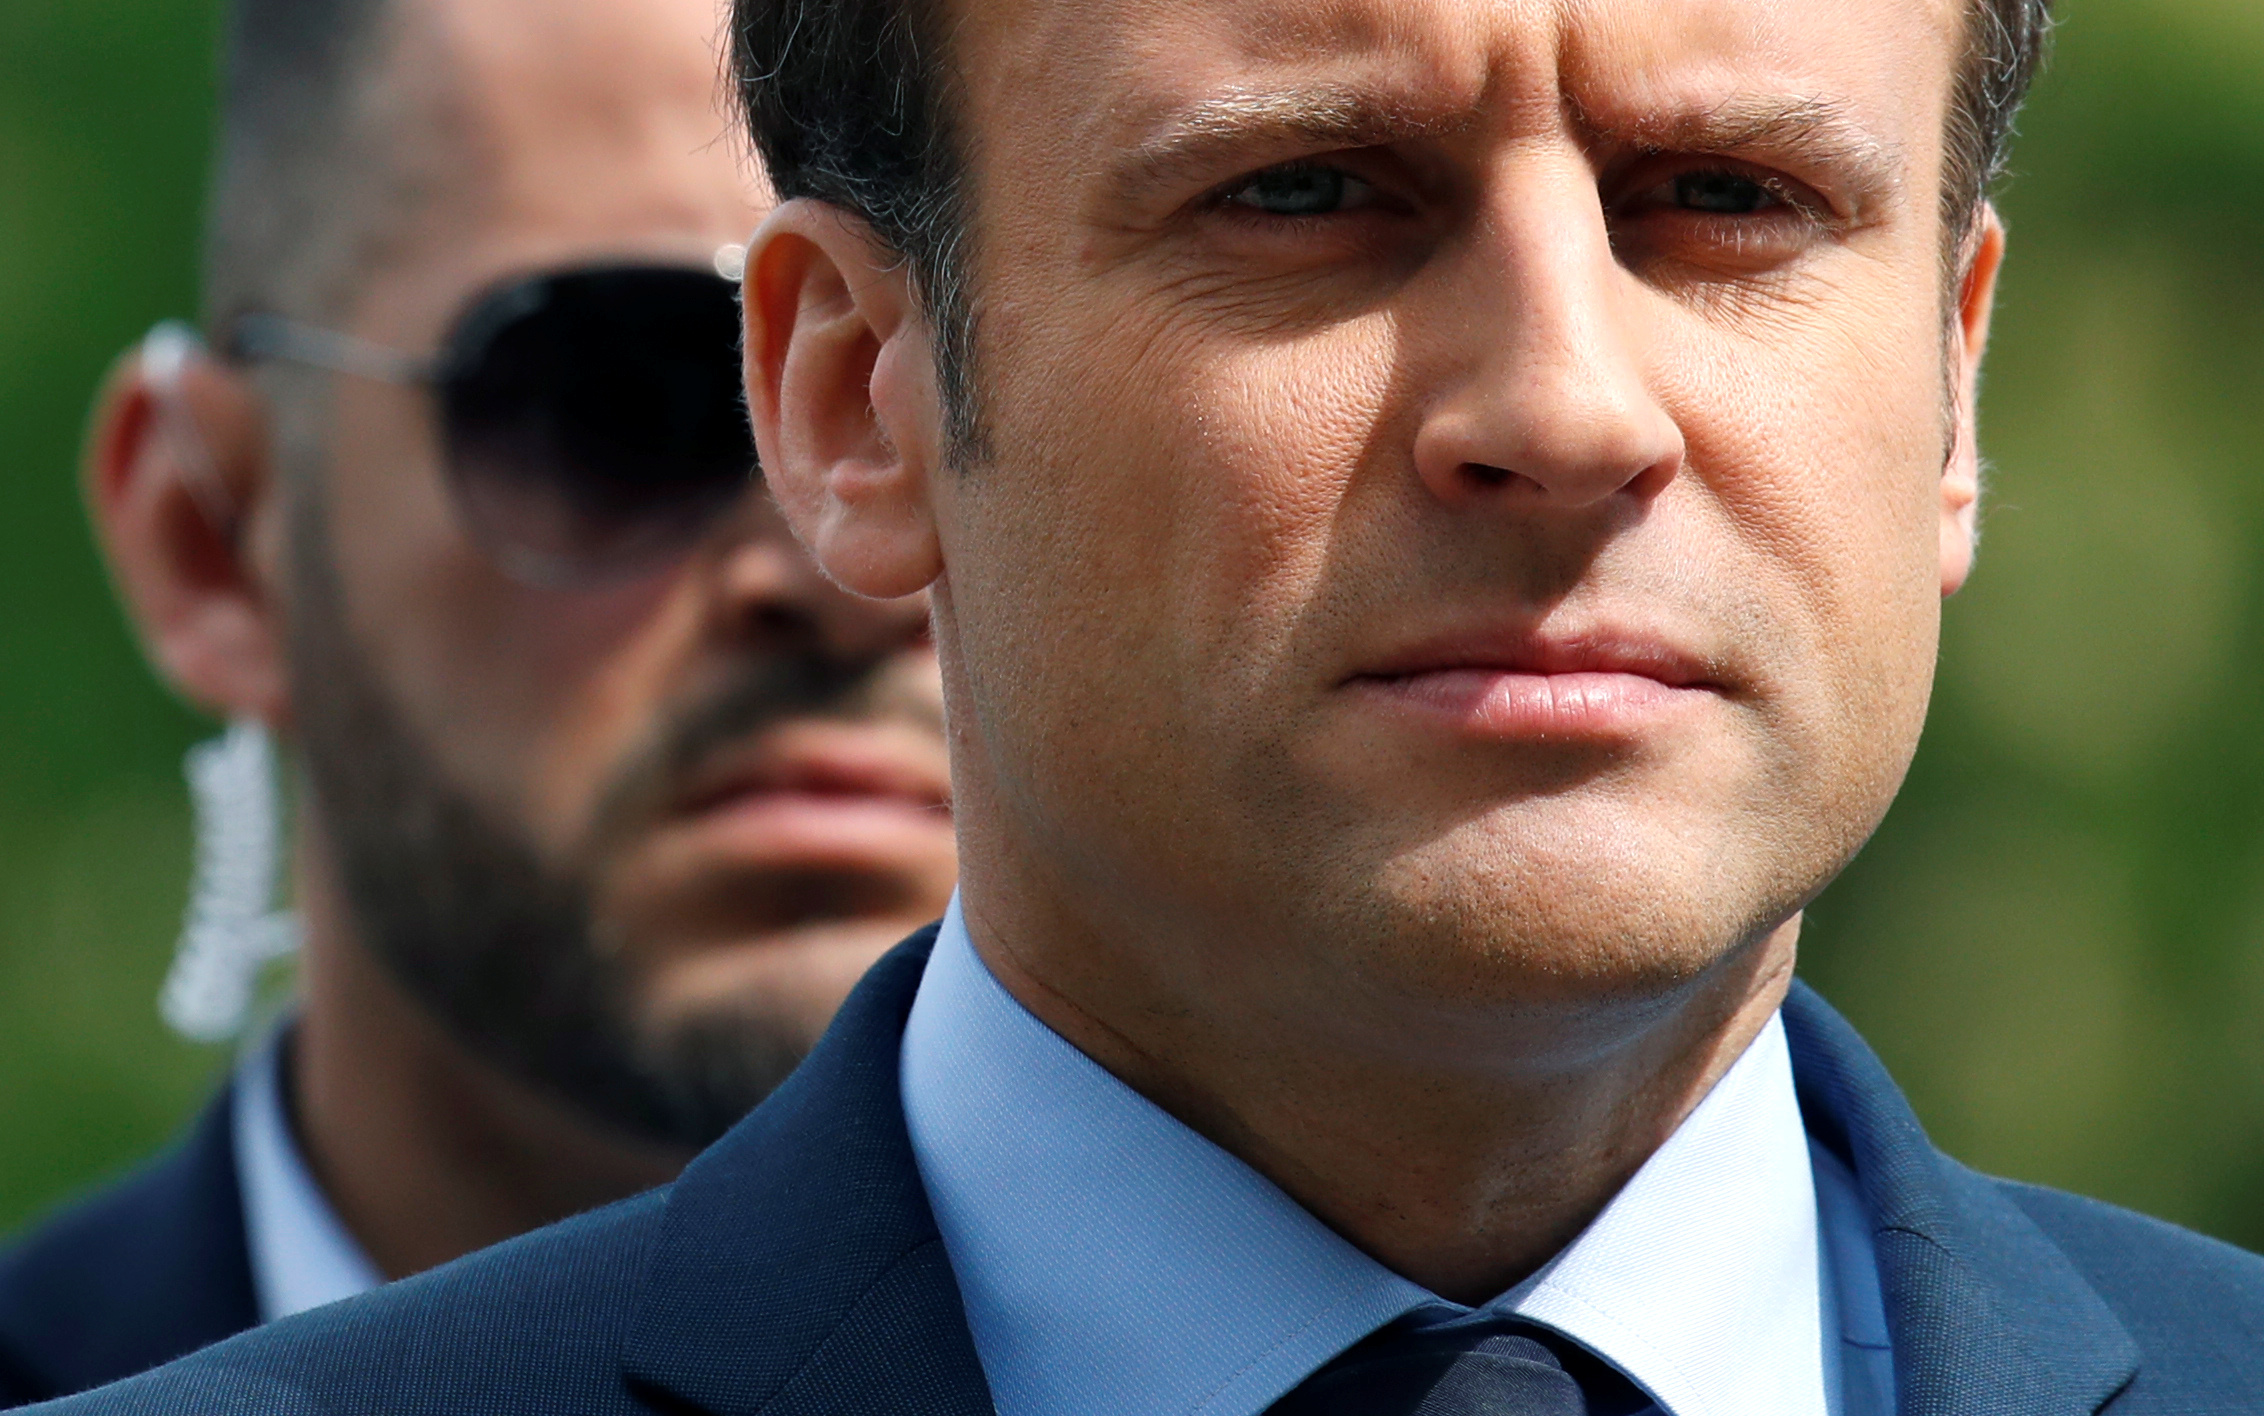 Emmanuel Macron, head of the political movement En Marche !, or Onwards !, and candidate for the 2017 French presidential election, attends a ceremony in Paris